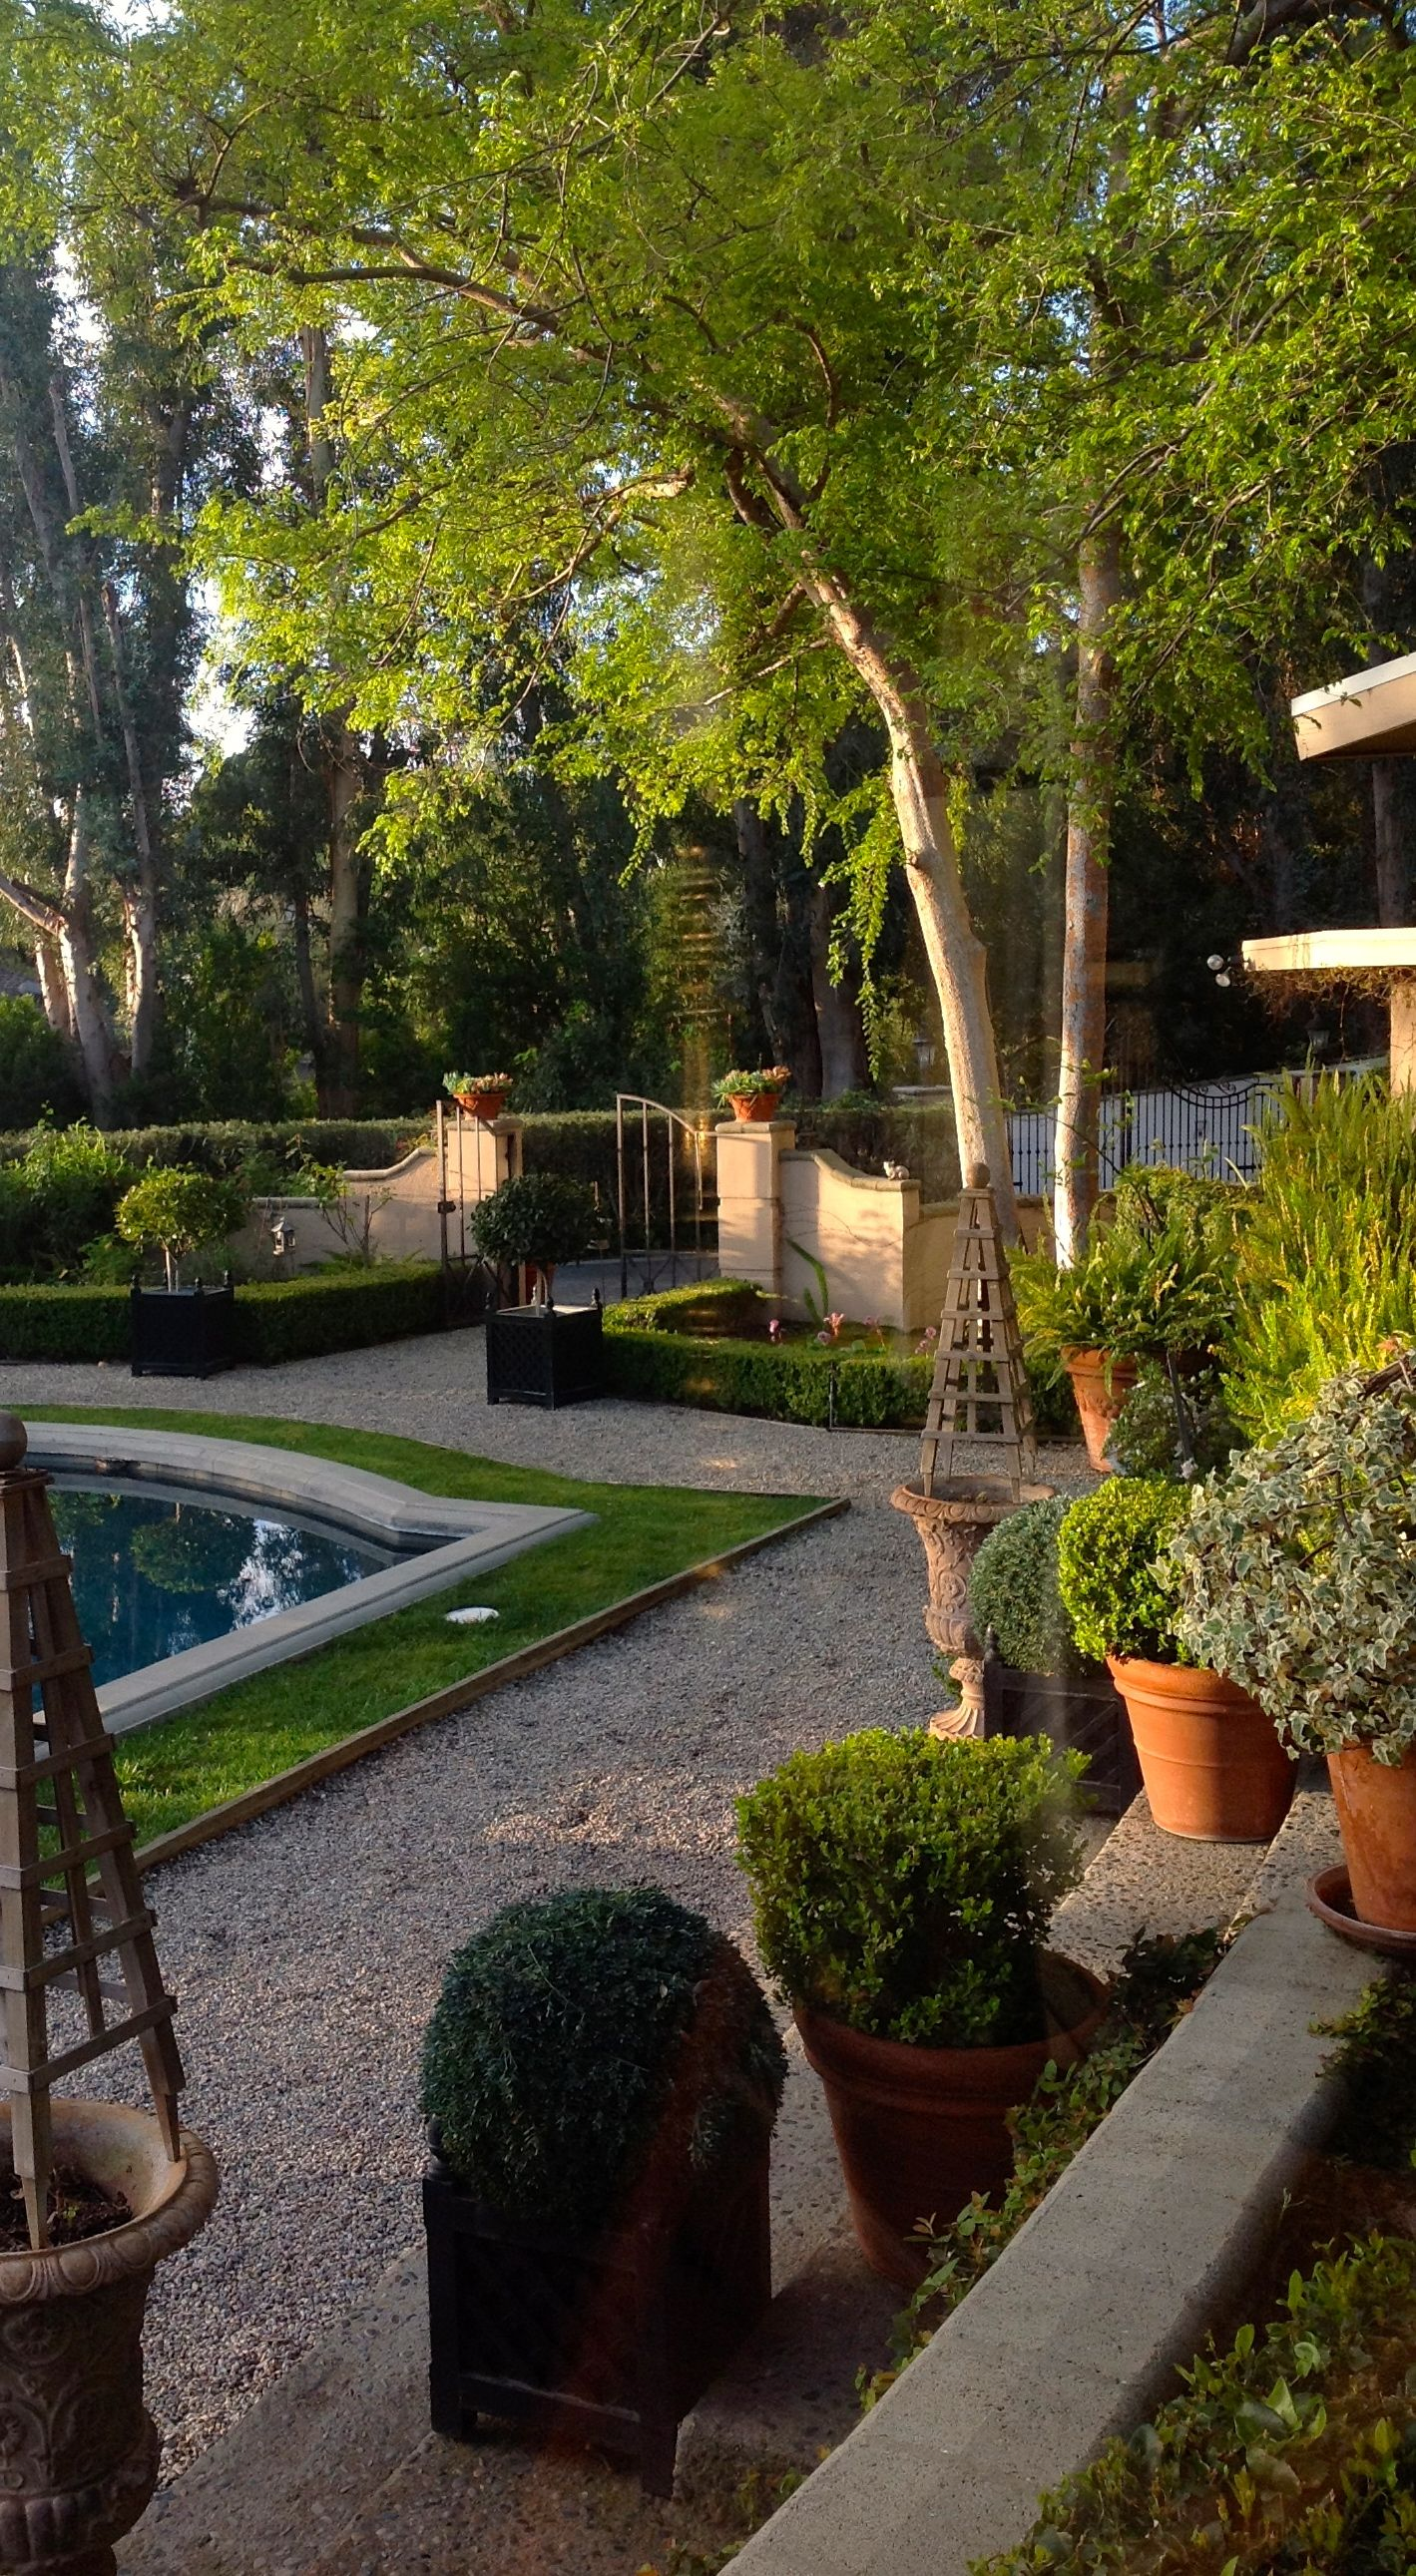 Pool Garten Winter Designer Joe Ruggiero S Garden In California Winter Home Decor